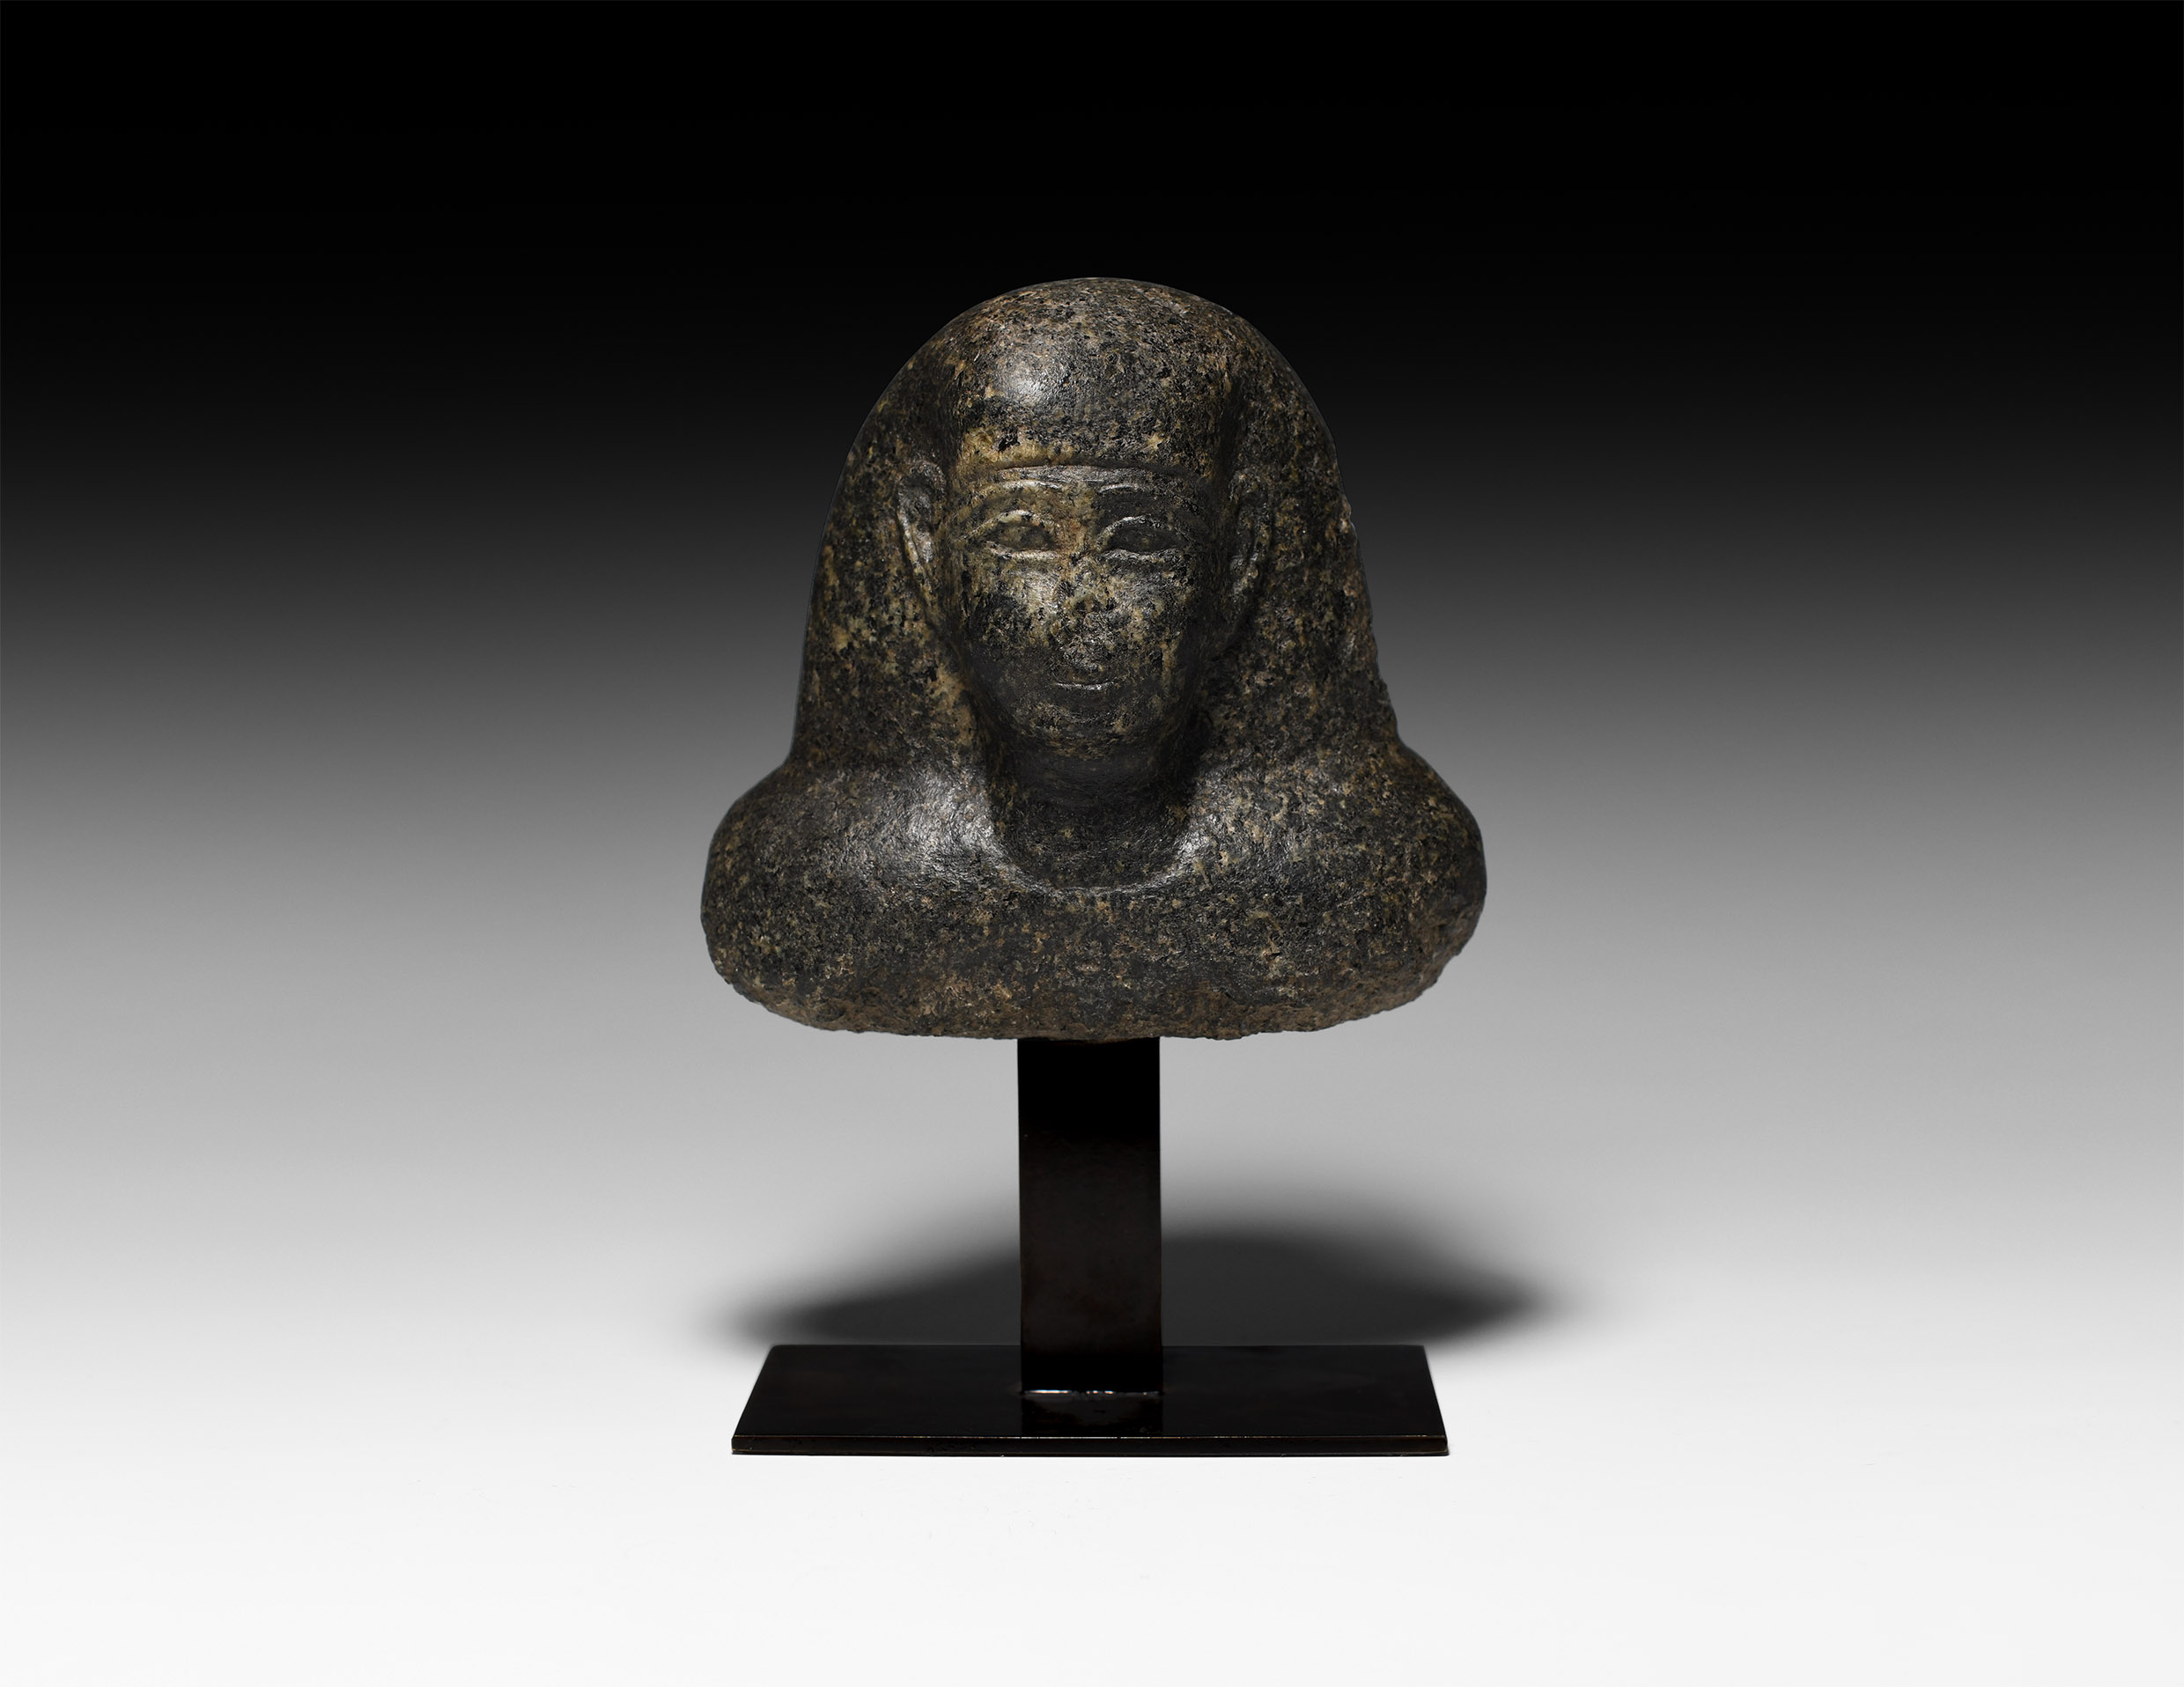 Egyptian Diorite Bust of a Dignitary with Hieroglyphic Inscription